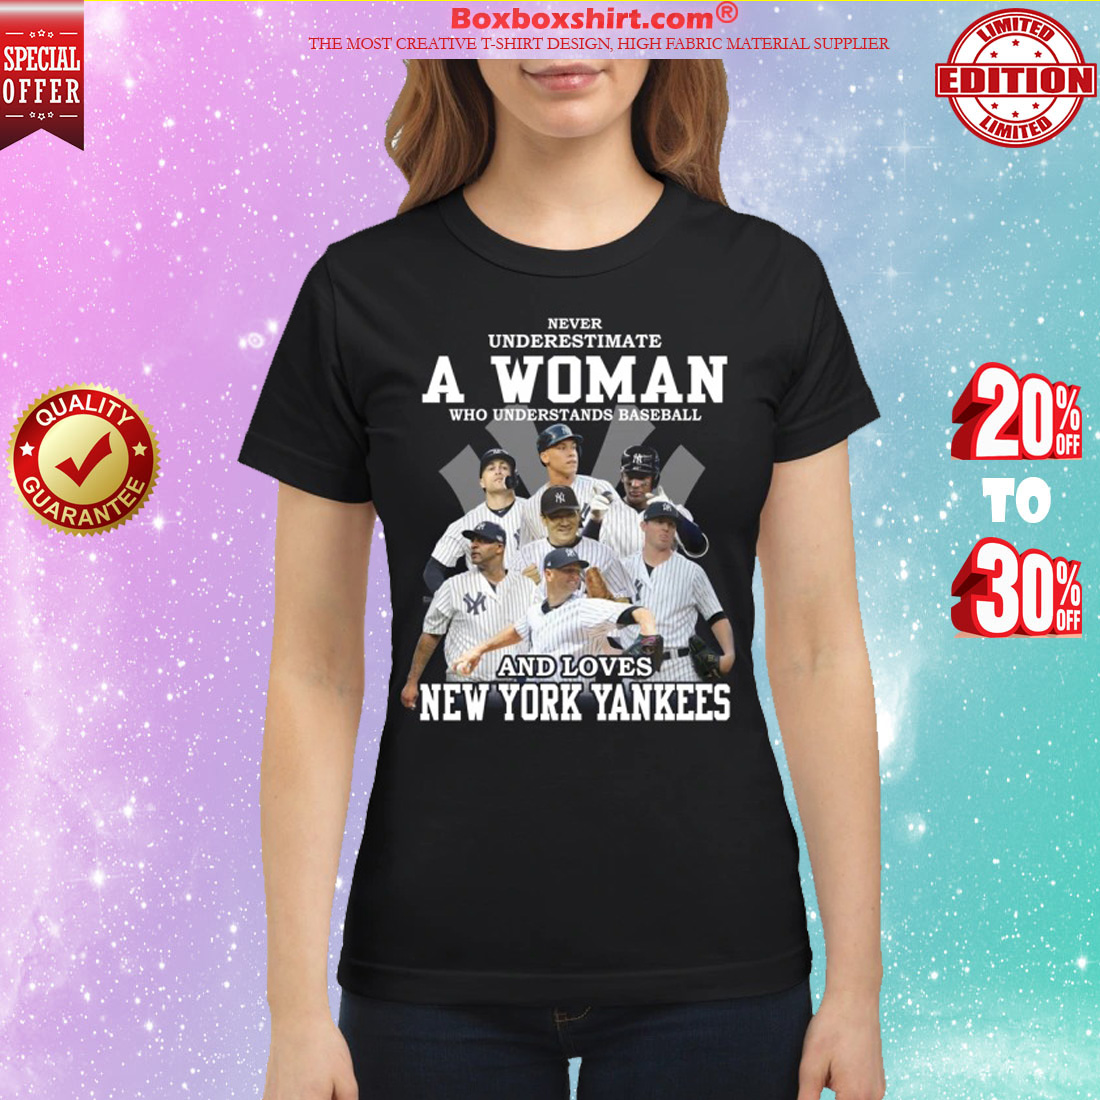 ed72acca Never underestimate a woman who understands baseball and loves New York  Yankees classic shirt